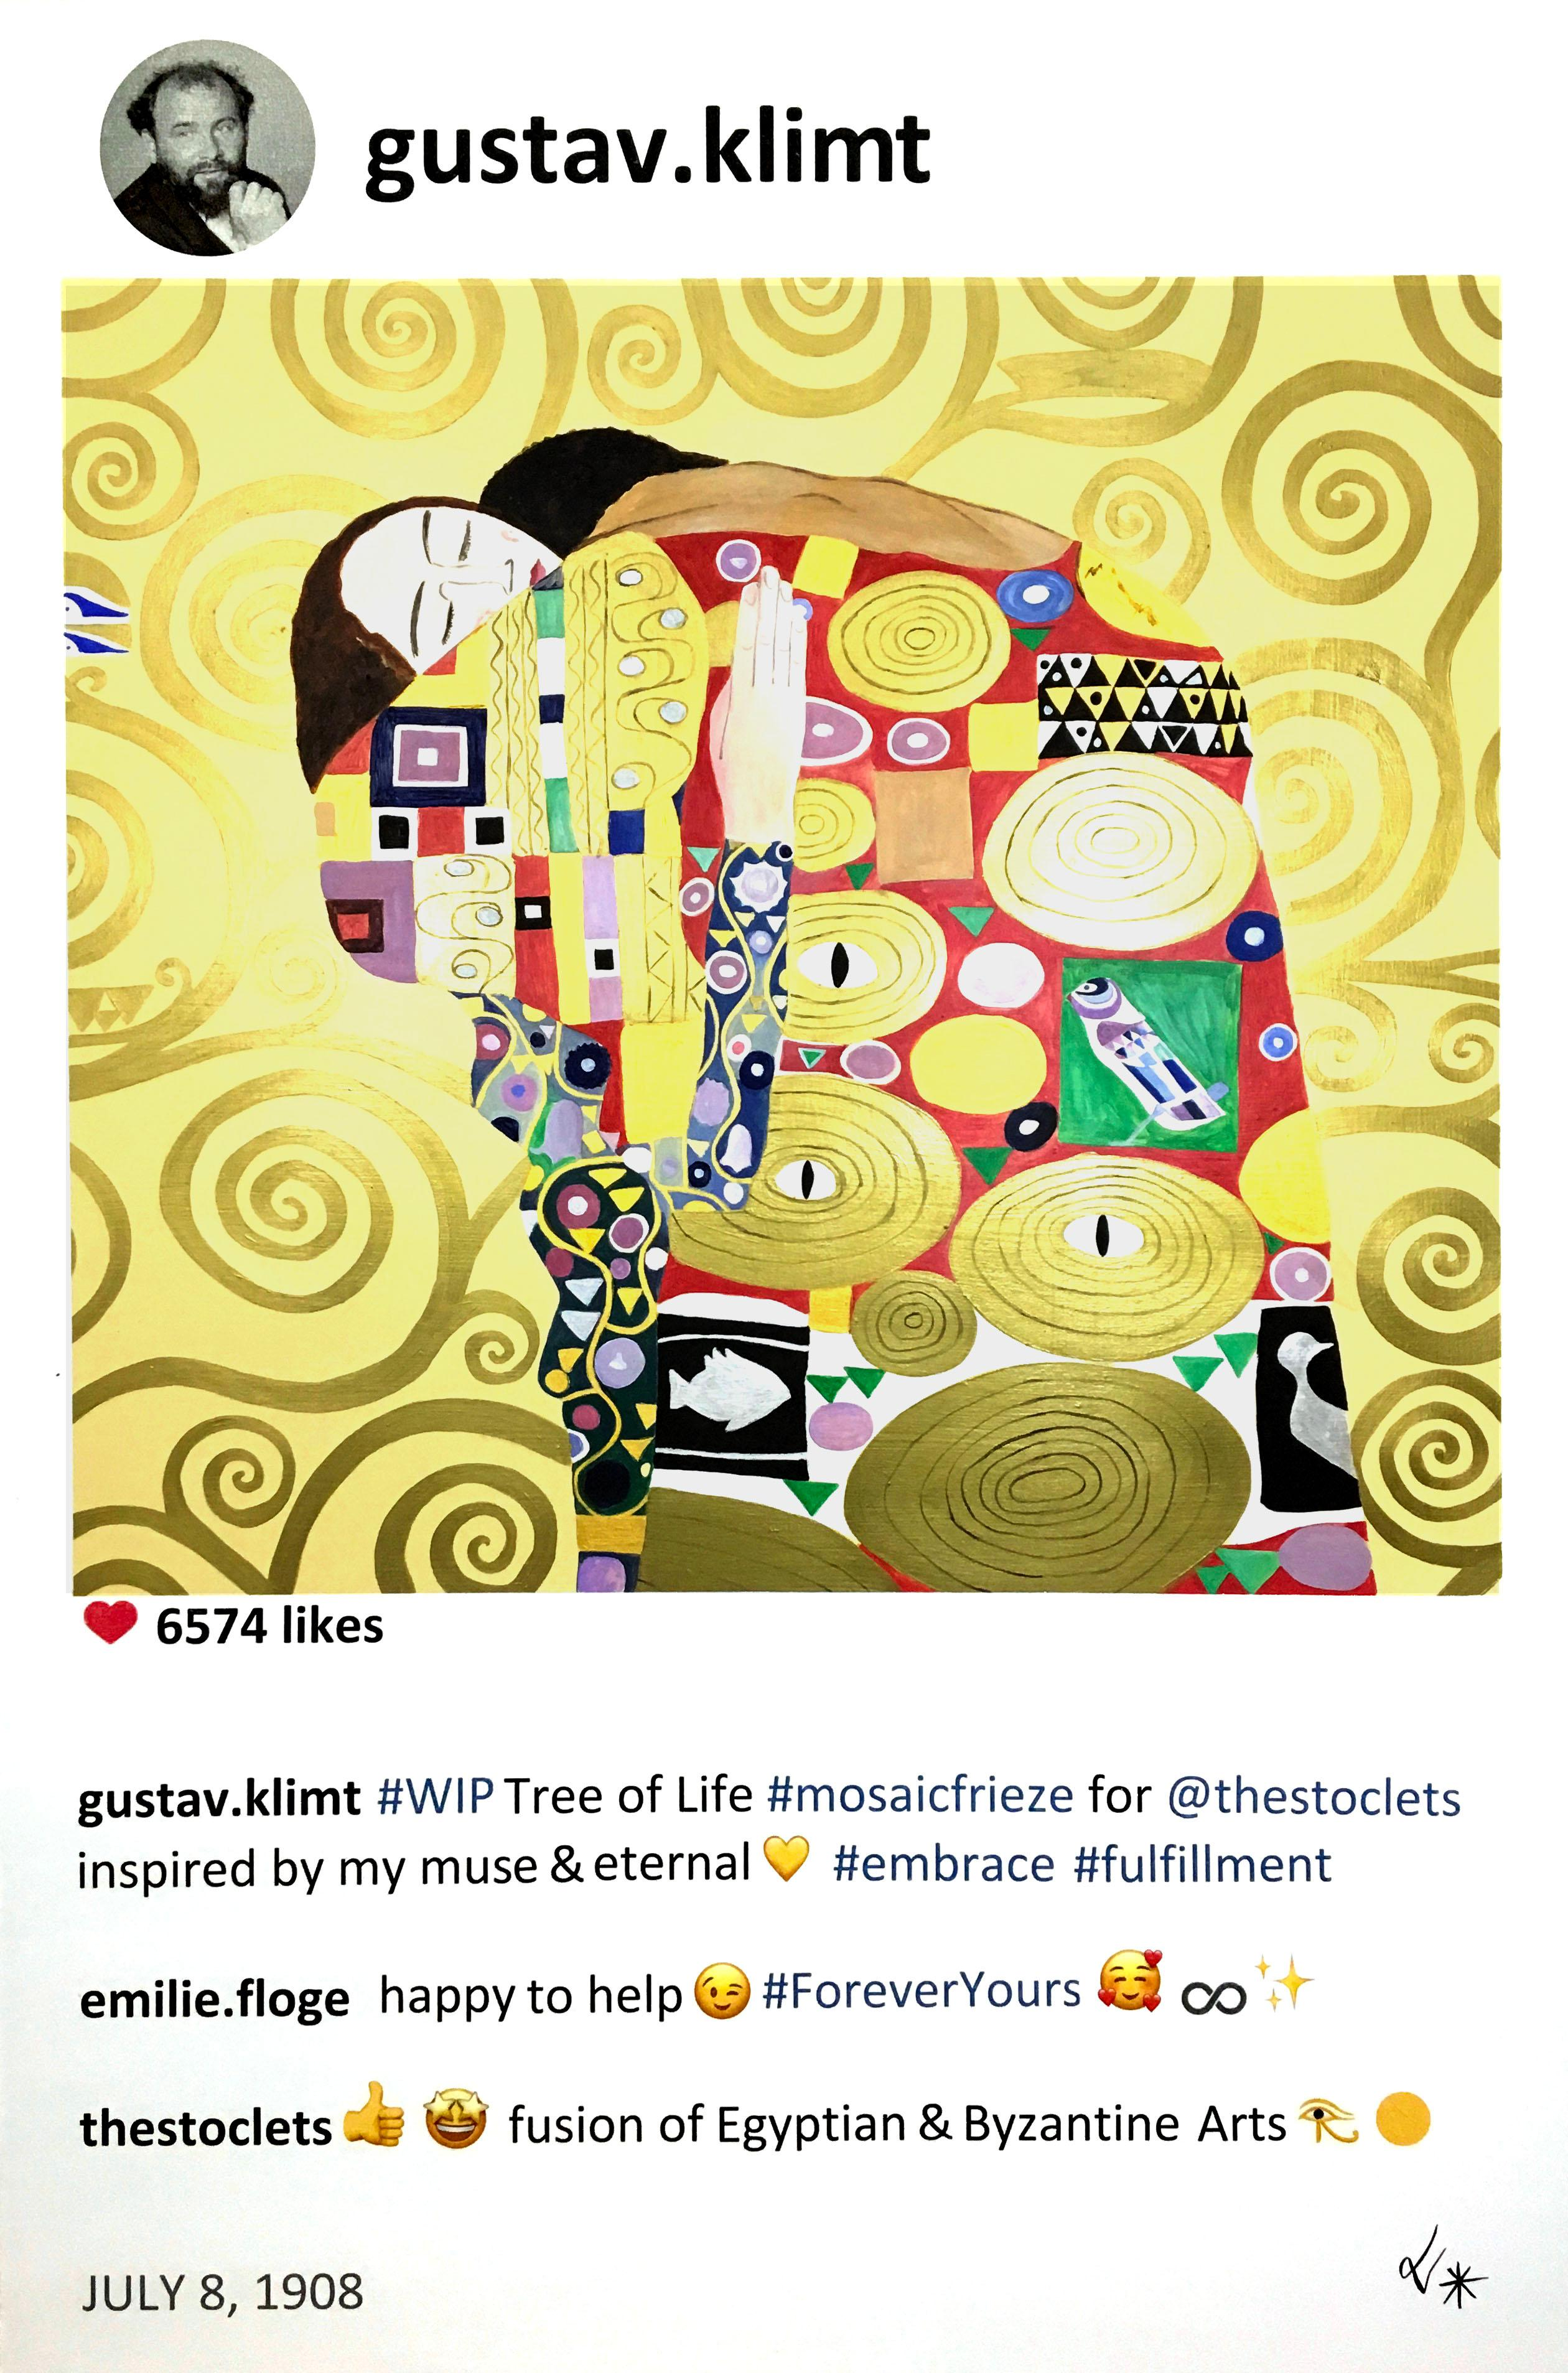 Klimt and the tree of life